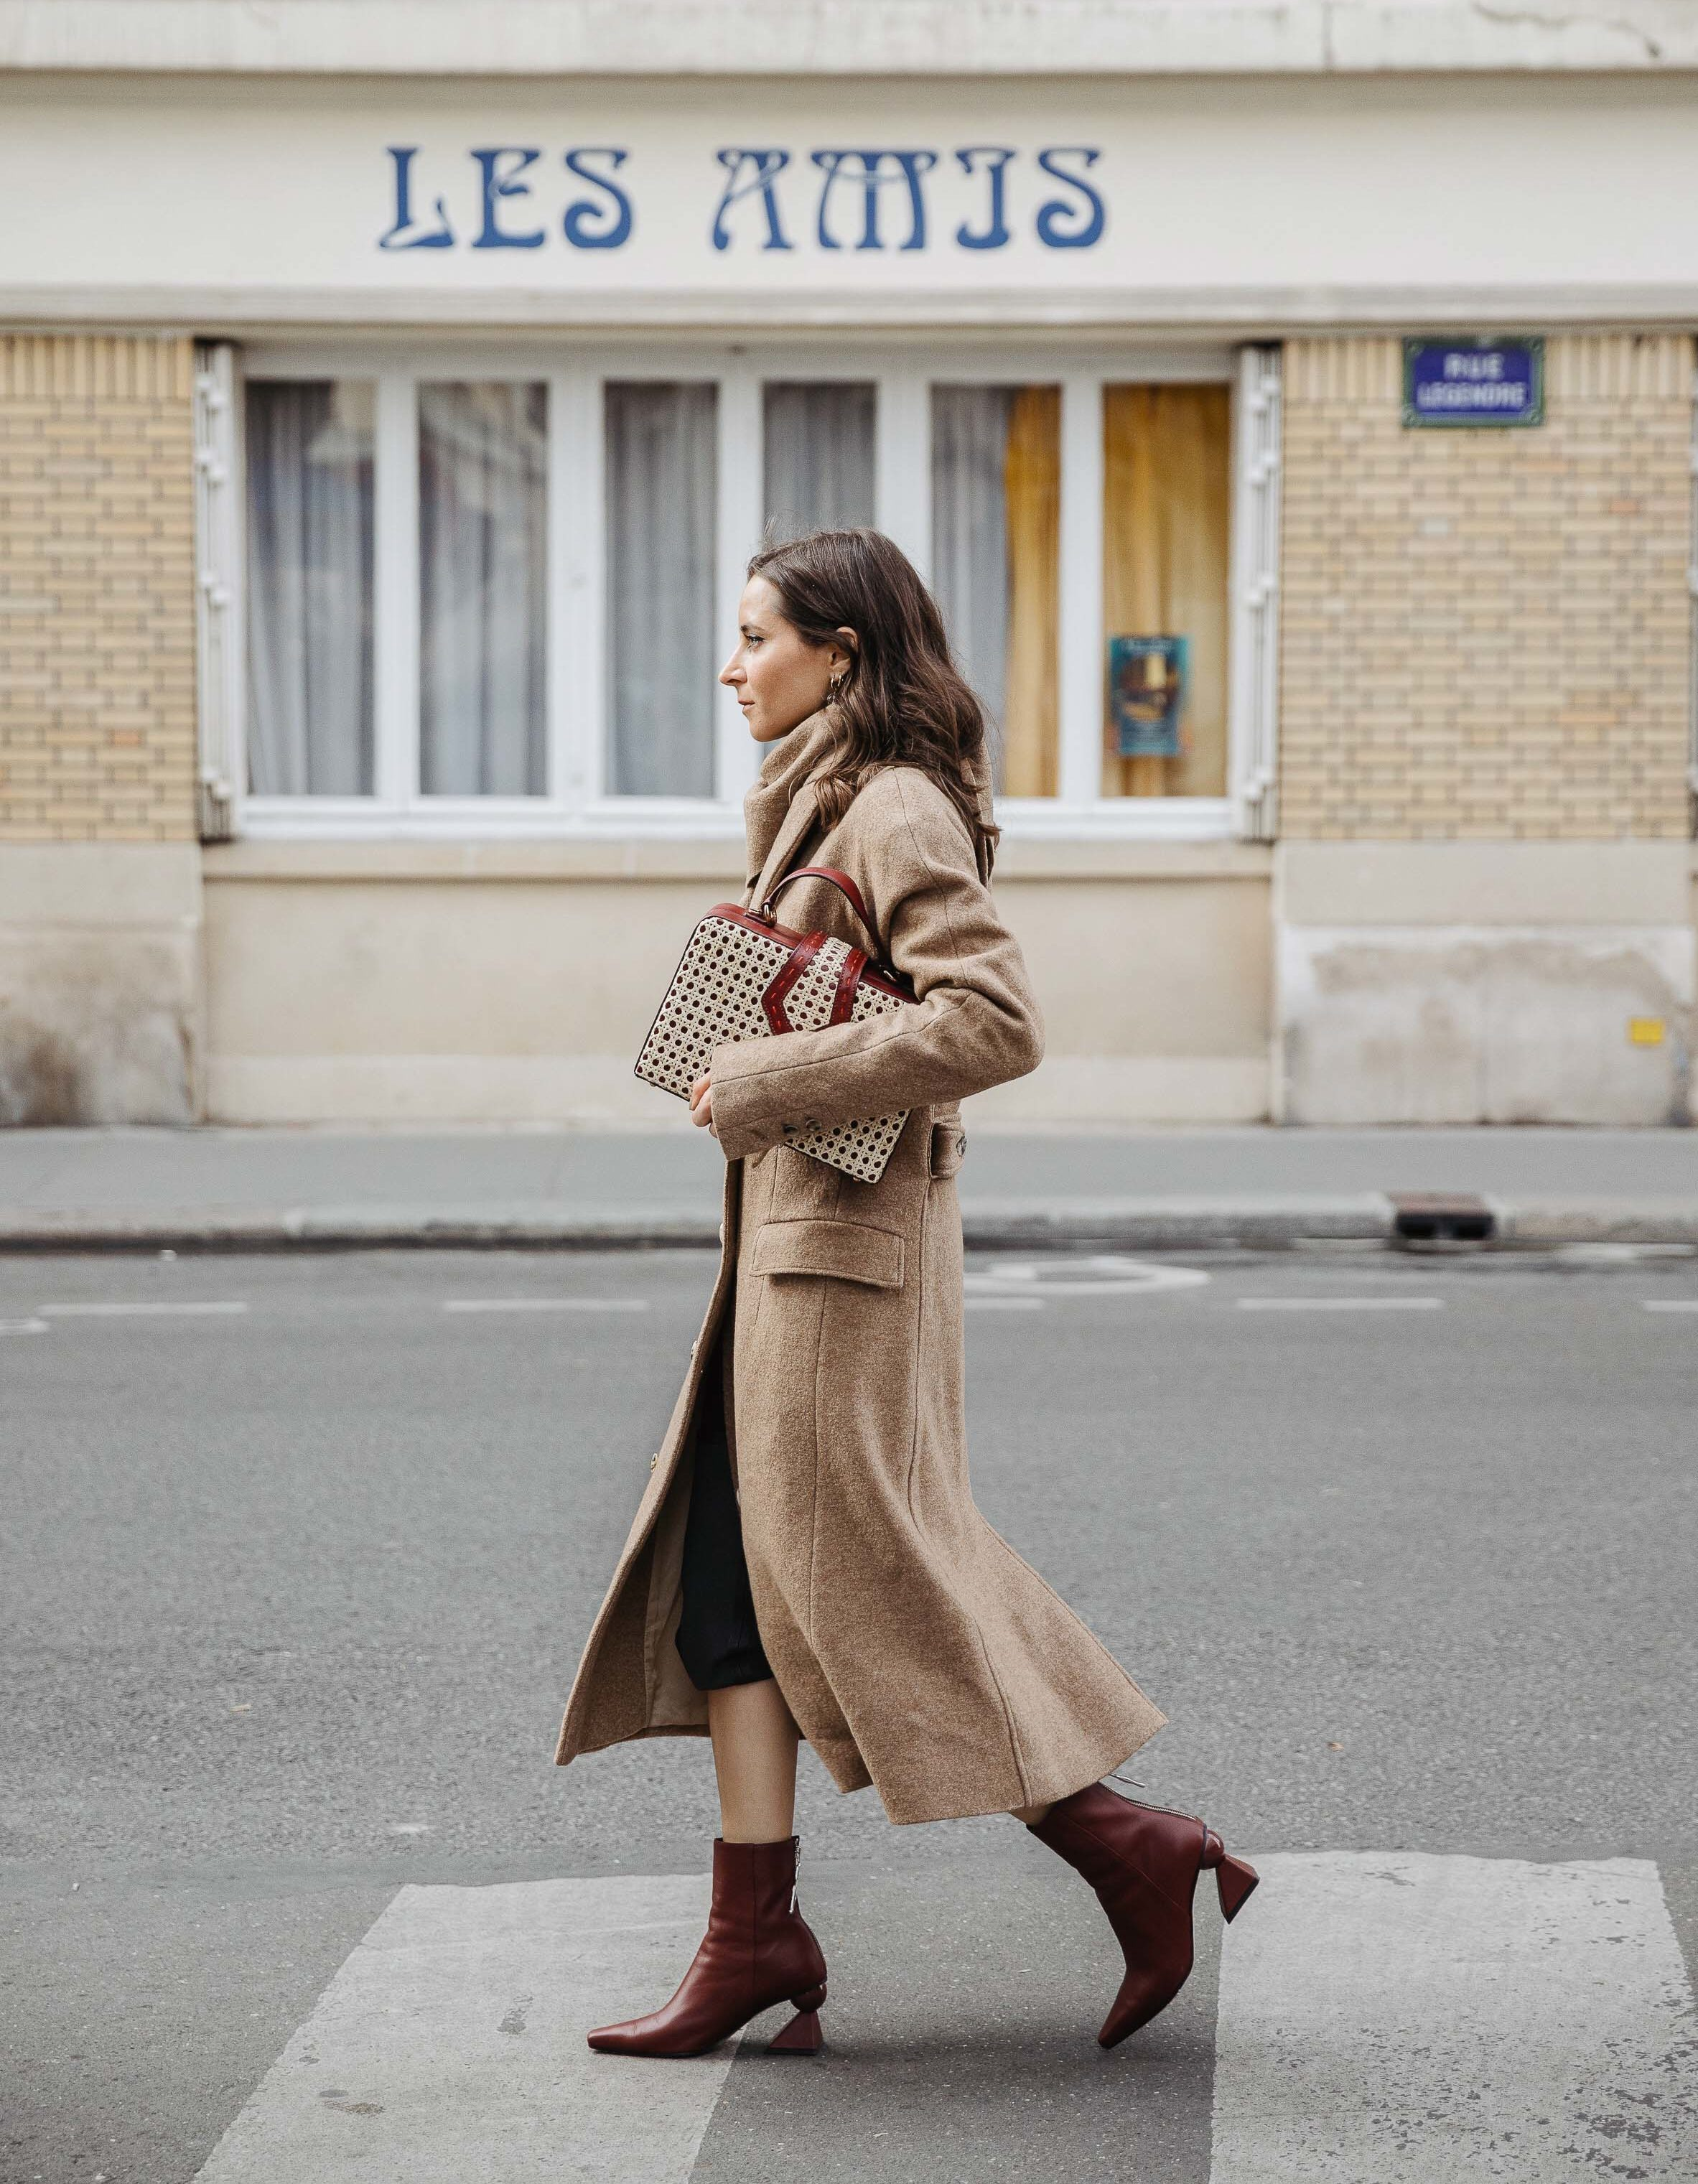 Paris Fashion Week SS20: My Street Style Looks to wear for